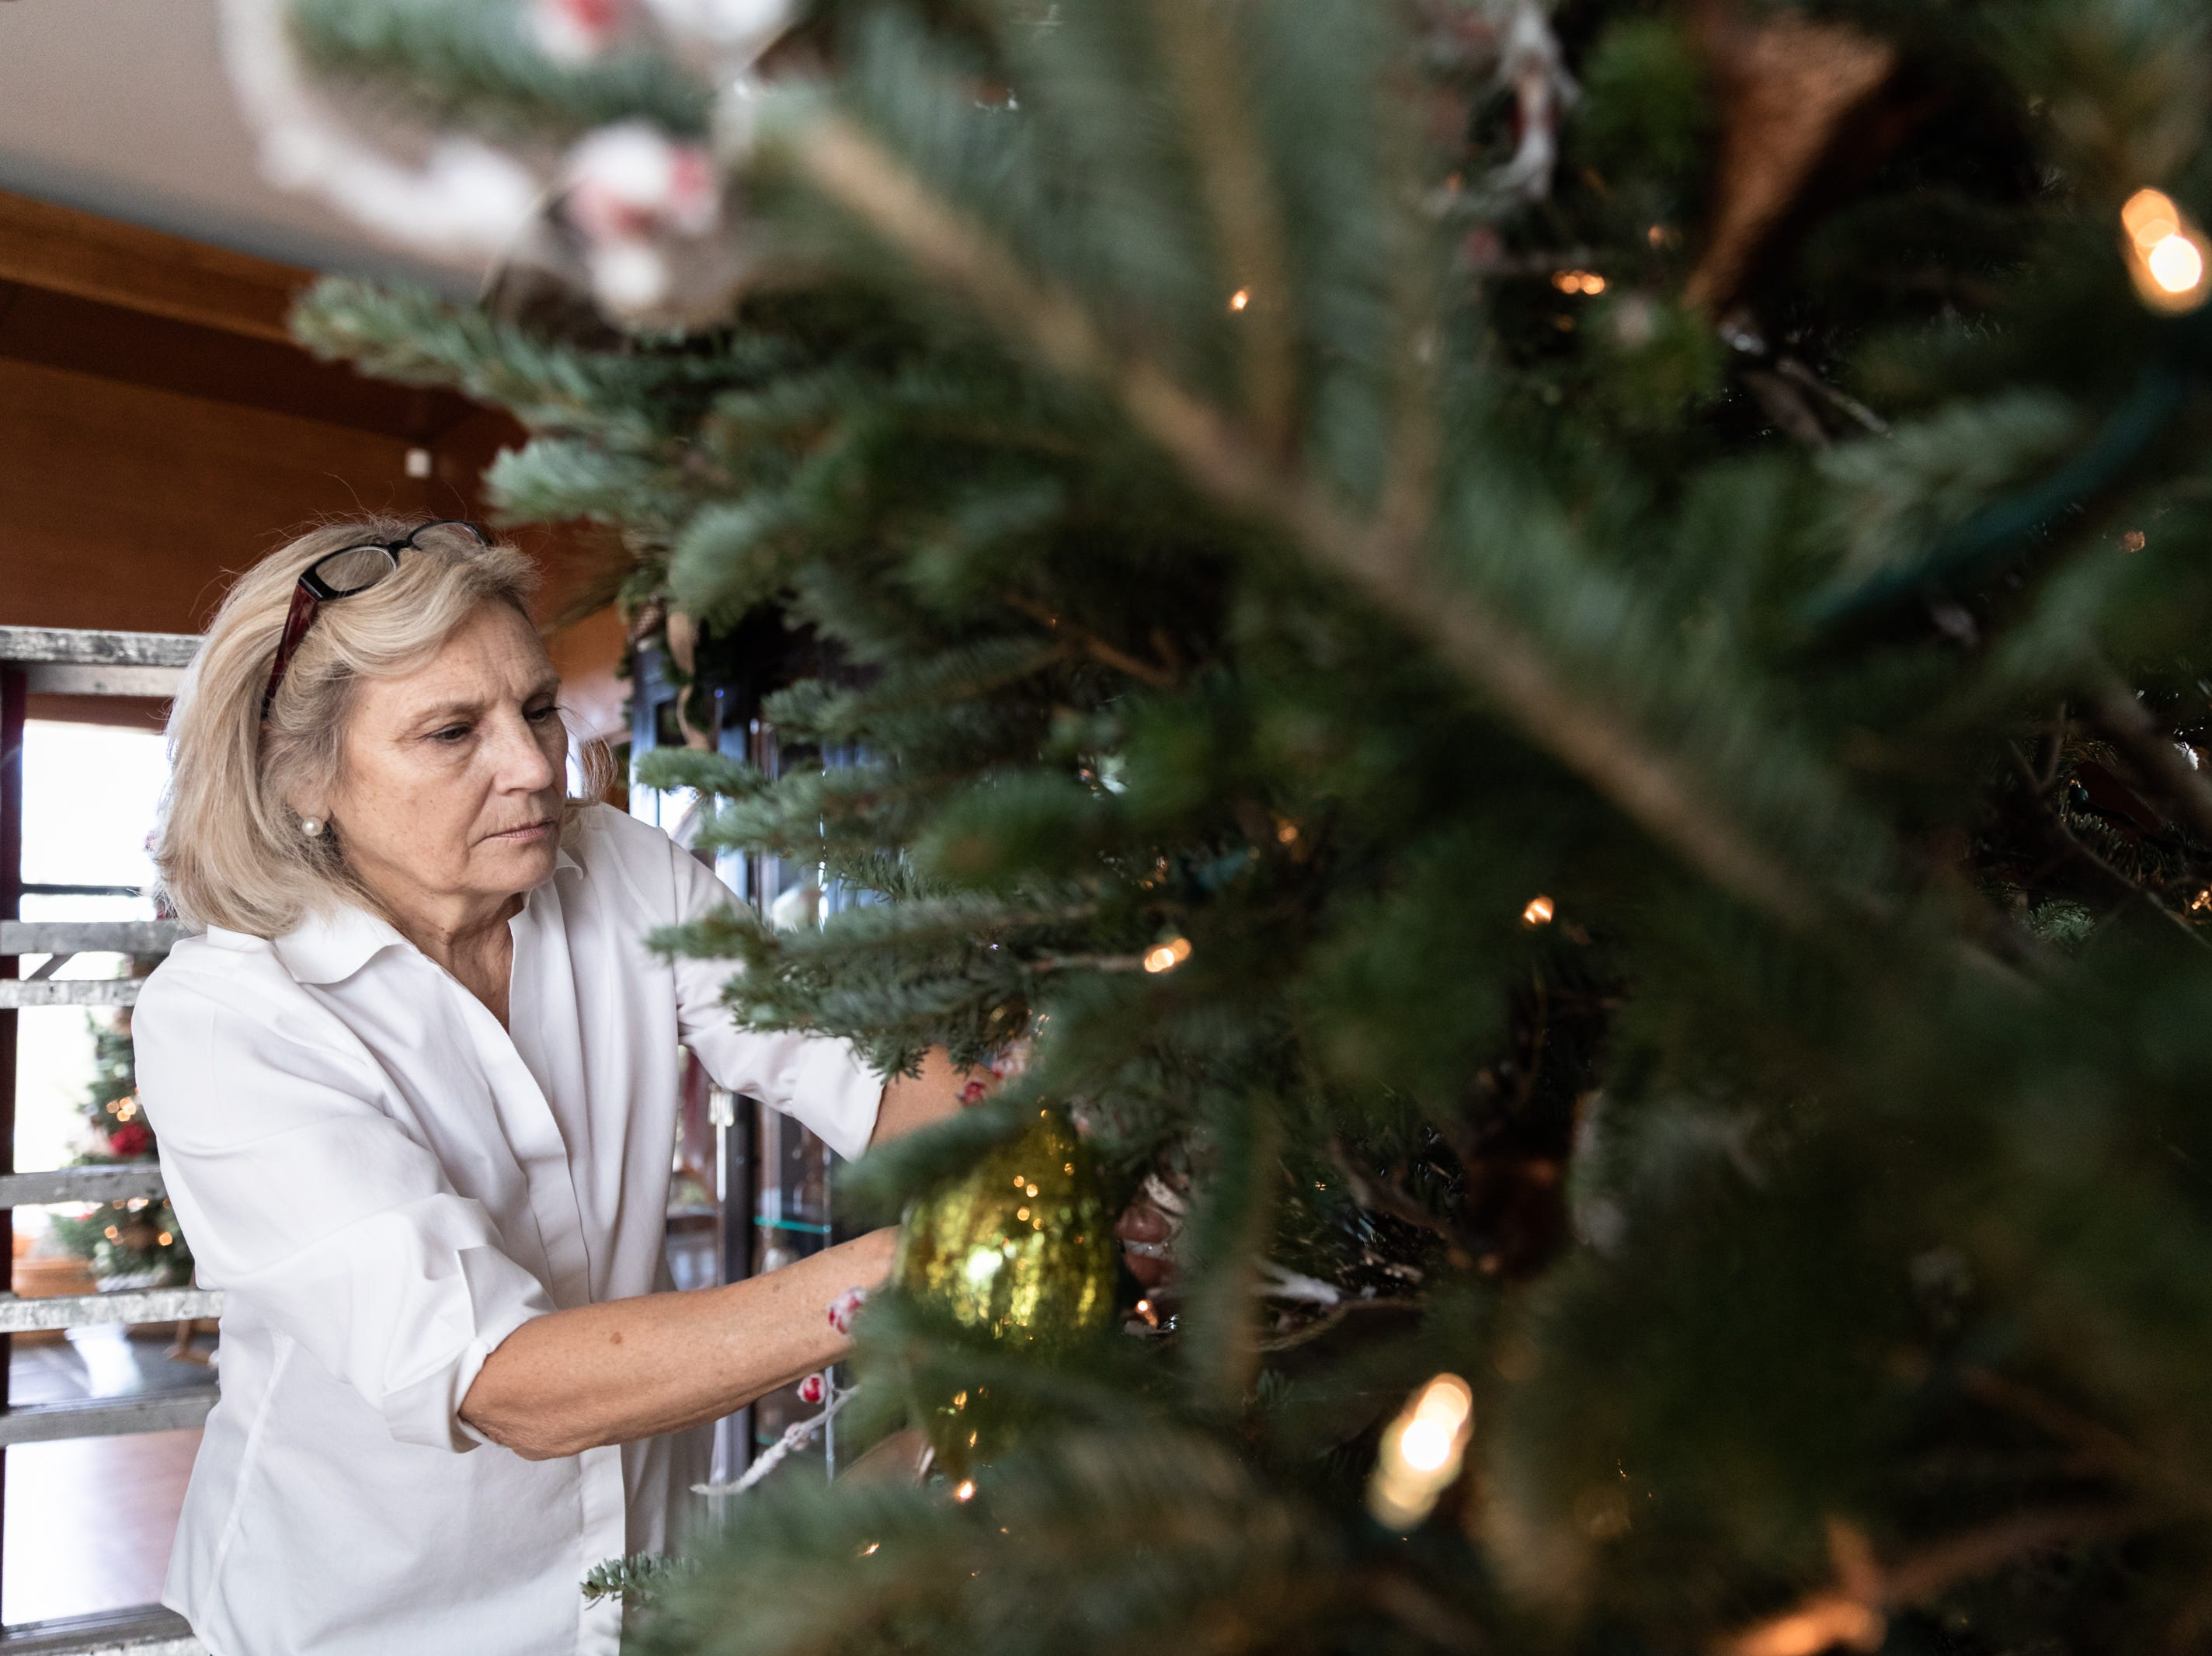 Kaye Myers, of Asheville, a member of the Governor's Western Residence Board of Directors, places an ornament on the Christmas tree at the residence on Patton Mountain Road in Asheville, Nov. 29, 2018.